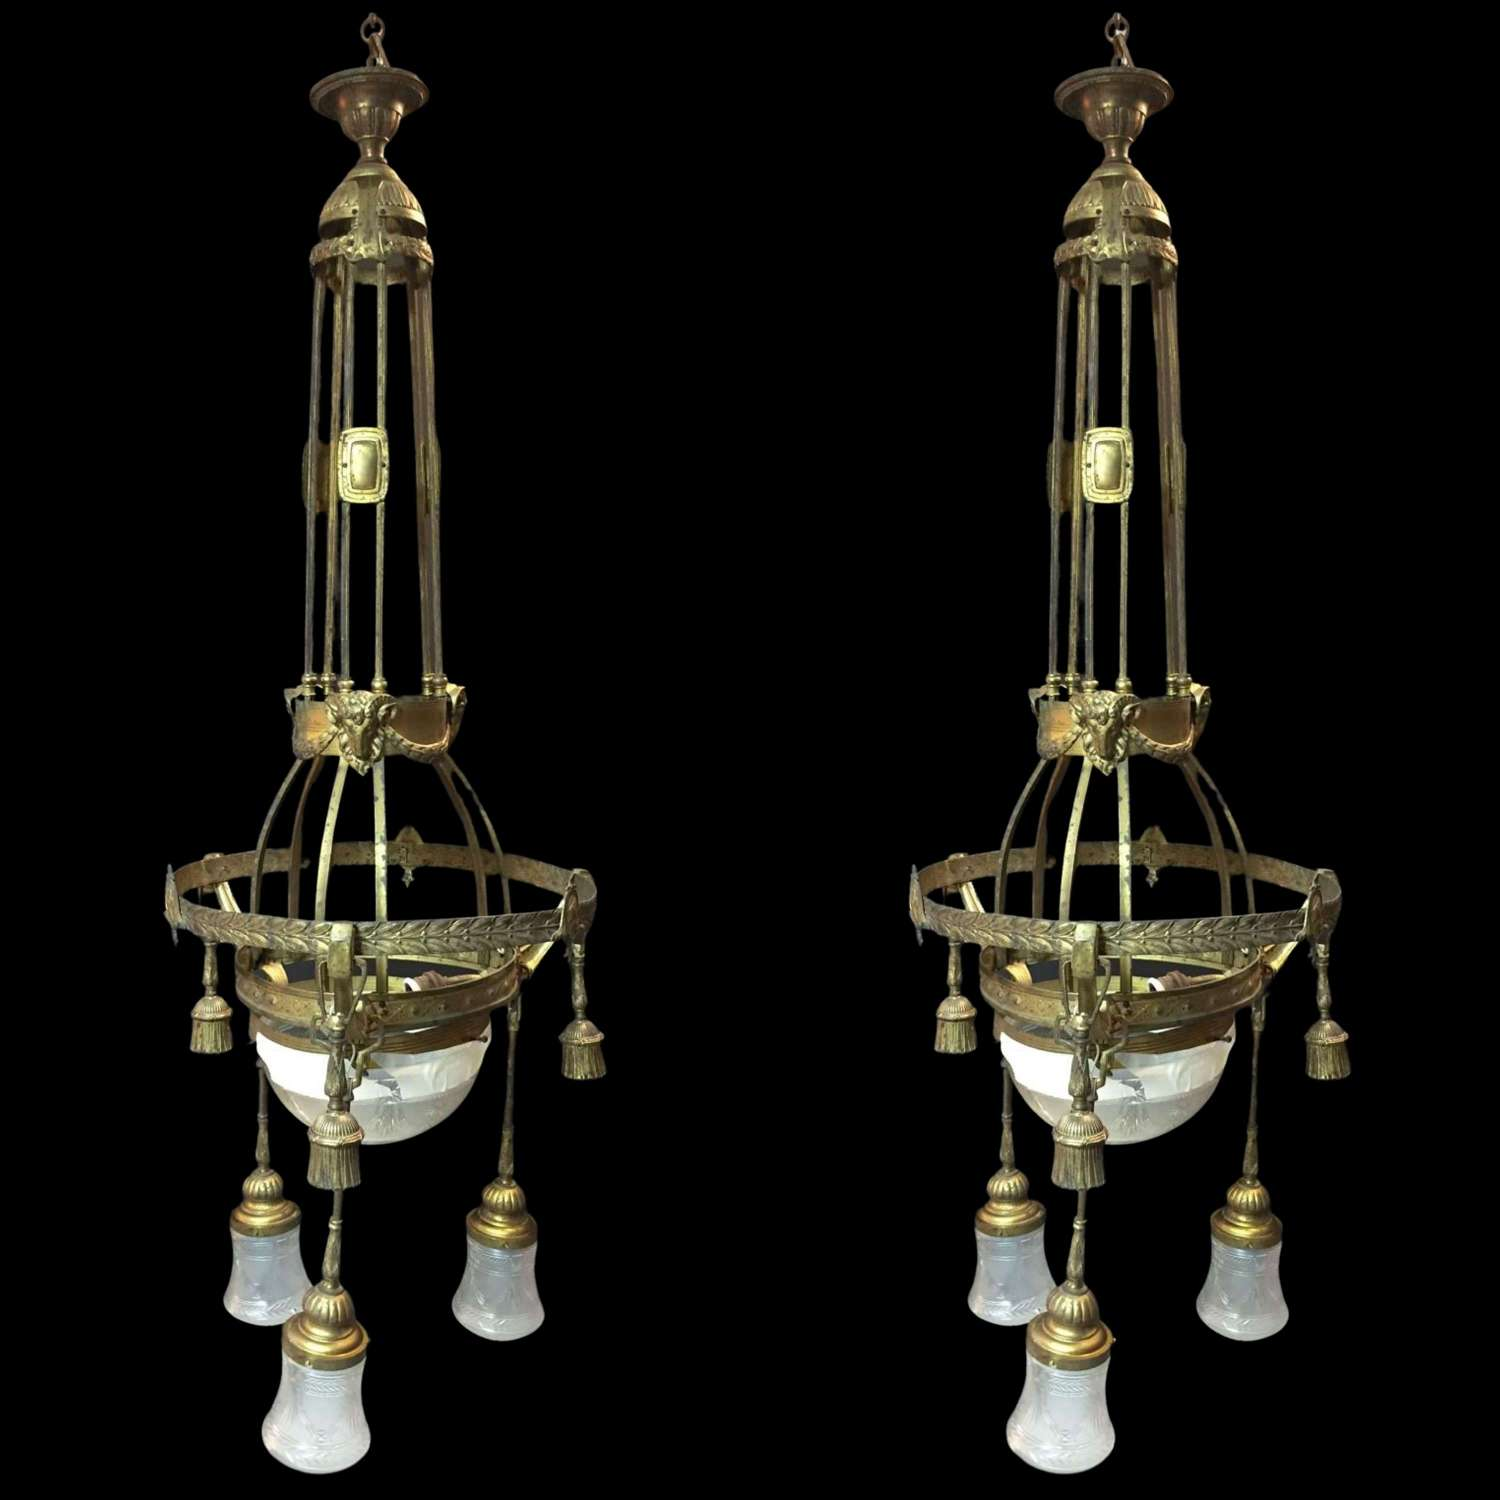 A large pair of Art nouveau pendant lights